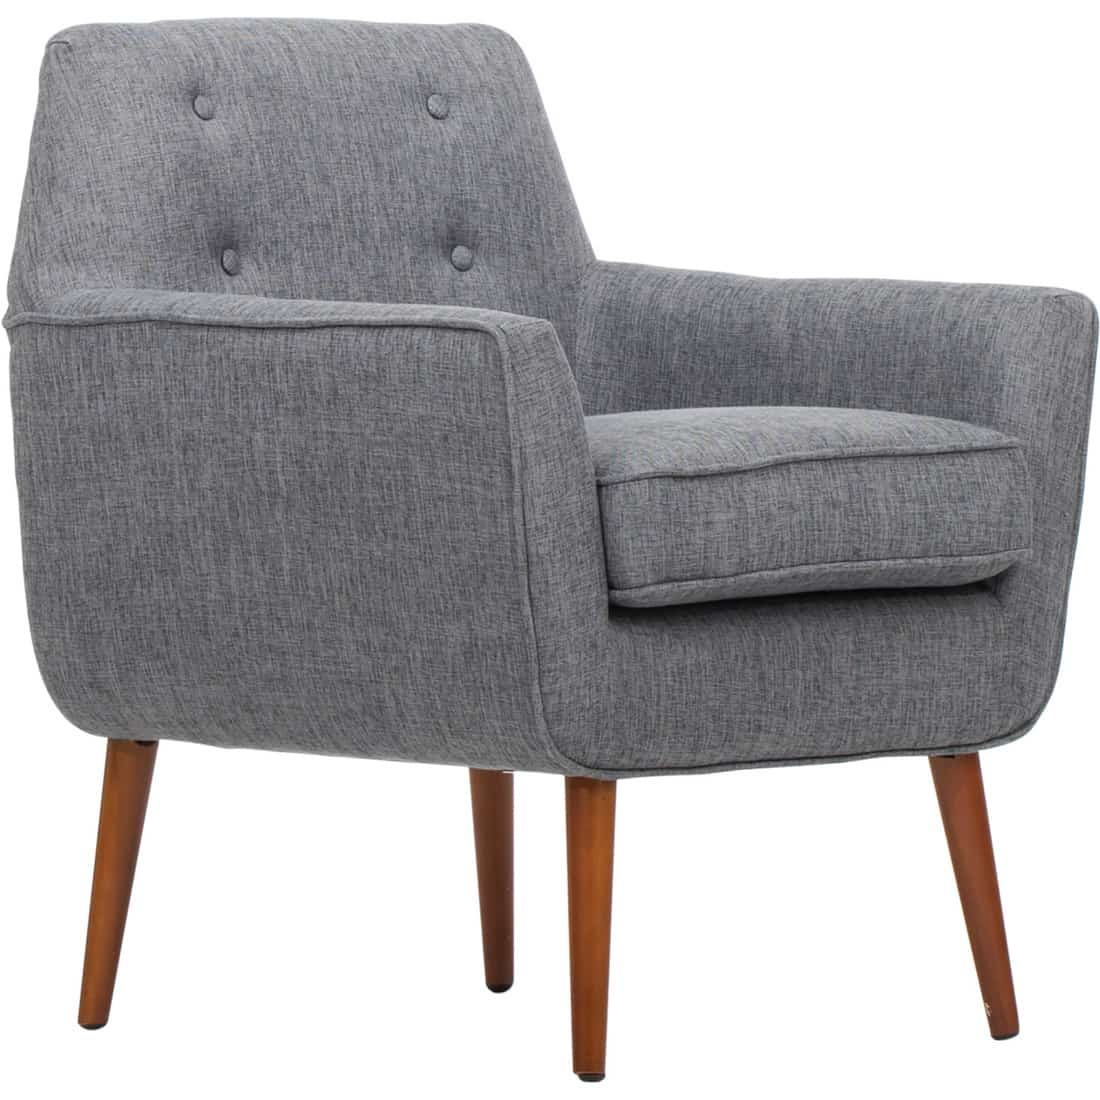 Dark Gray Living Rolled Top Club Chair. Dark Gray Chair With Wood Frame